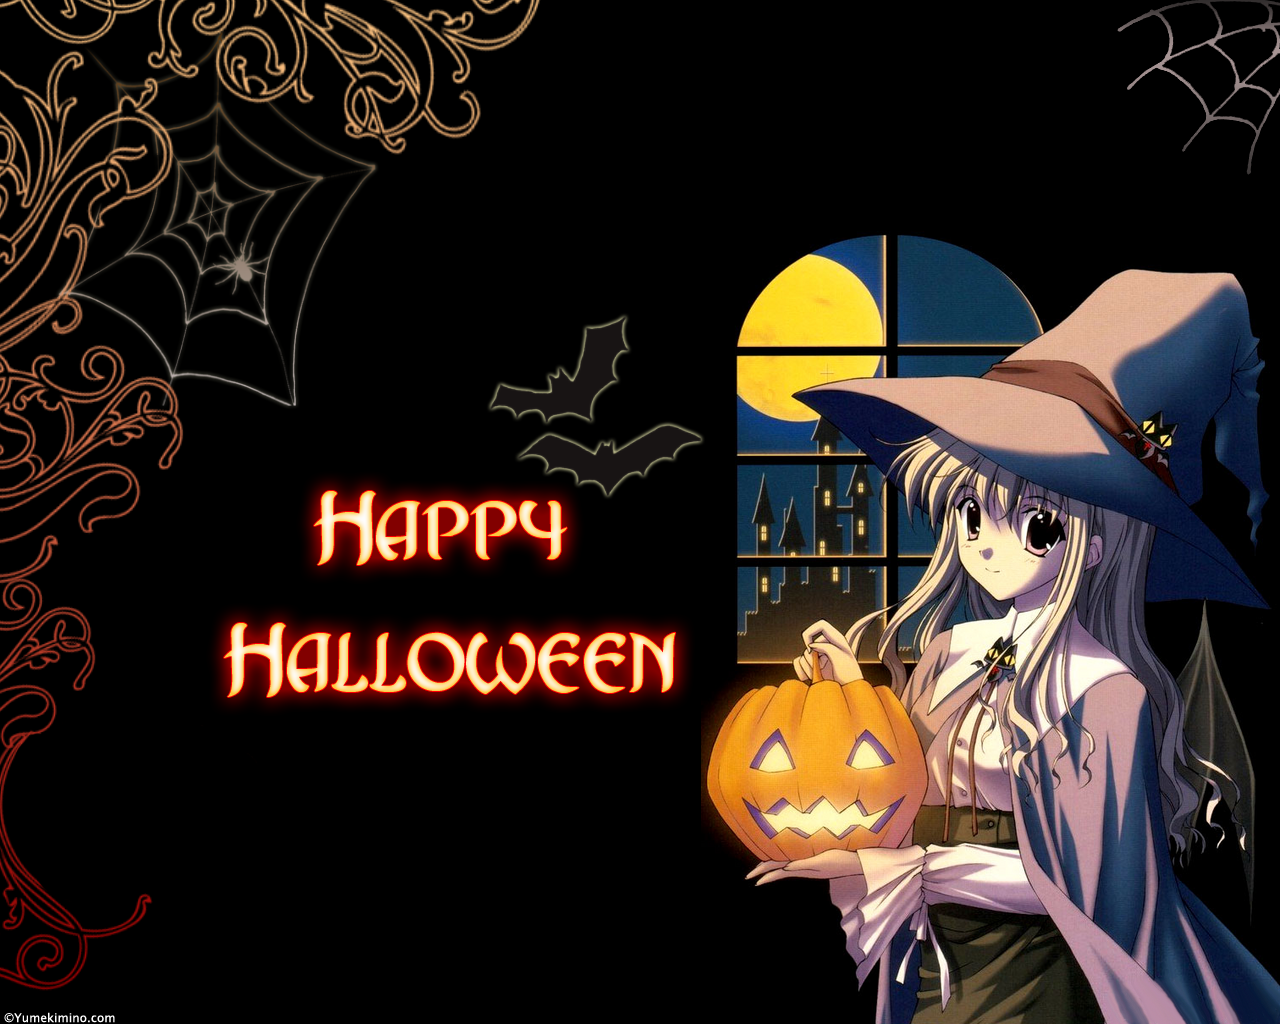 happy_halloween_manga_anime_desktop_1280x1024_free-wallpaper-4458